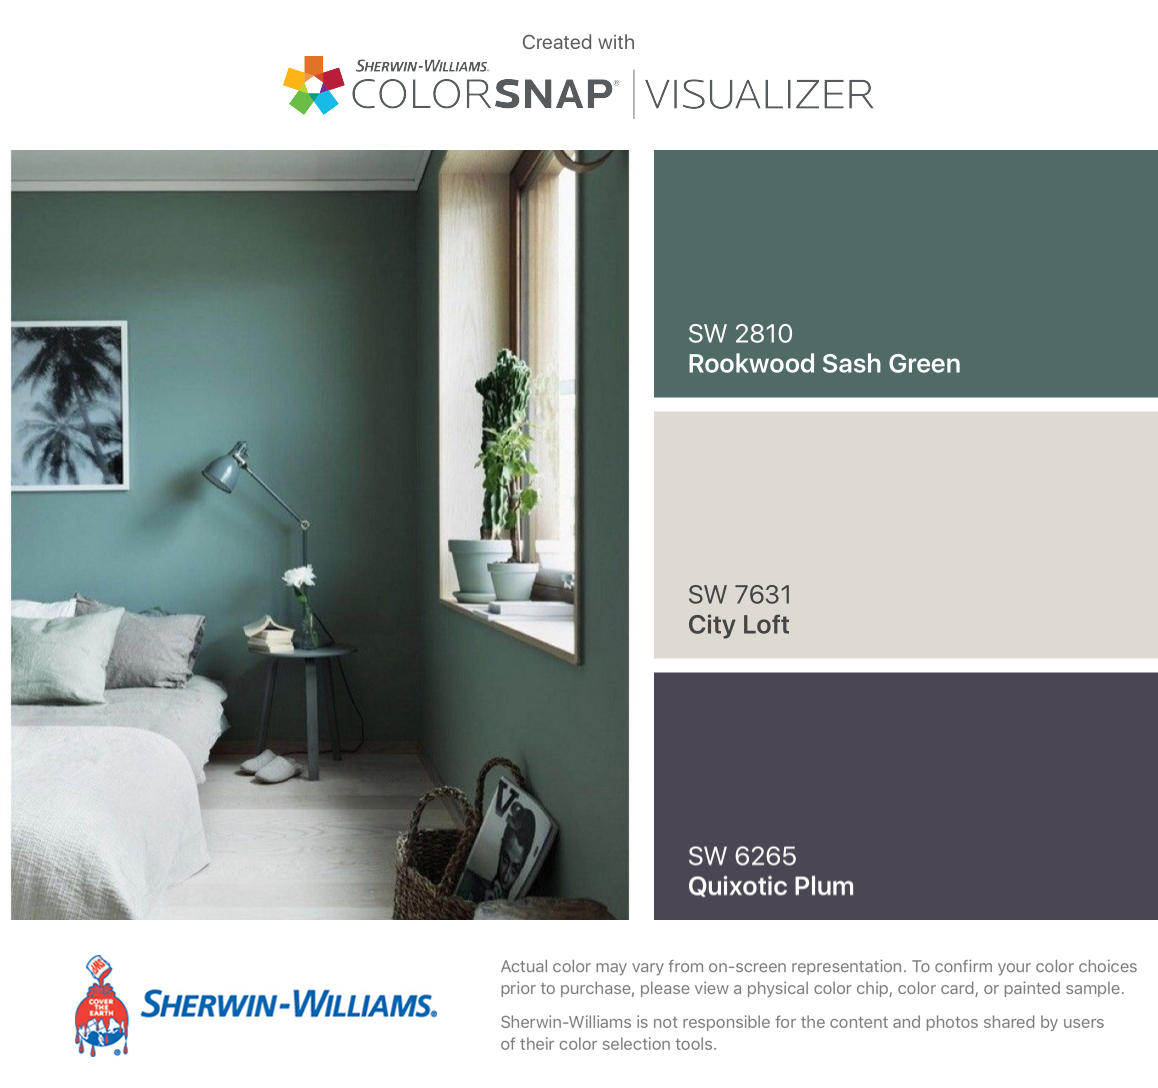 I found these colors with ColorSnap® Visualizer for iPhone by Sherwin-Williams: Rookwood Sash Green (SW 2810), City Loft (SW 7631), Quixotic Plum (SW 6265). #cityloftsherwinwilliams I found these colors with ColorSnap® Visualizer for iPhone by Sherwin-Williams: Rookwood Sash Green (SW 2810), City Loft (SW 7631), Quixotic Plum (SW 6265). #cityloftsherwinwilliams